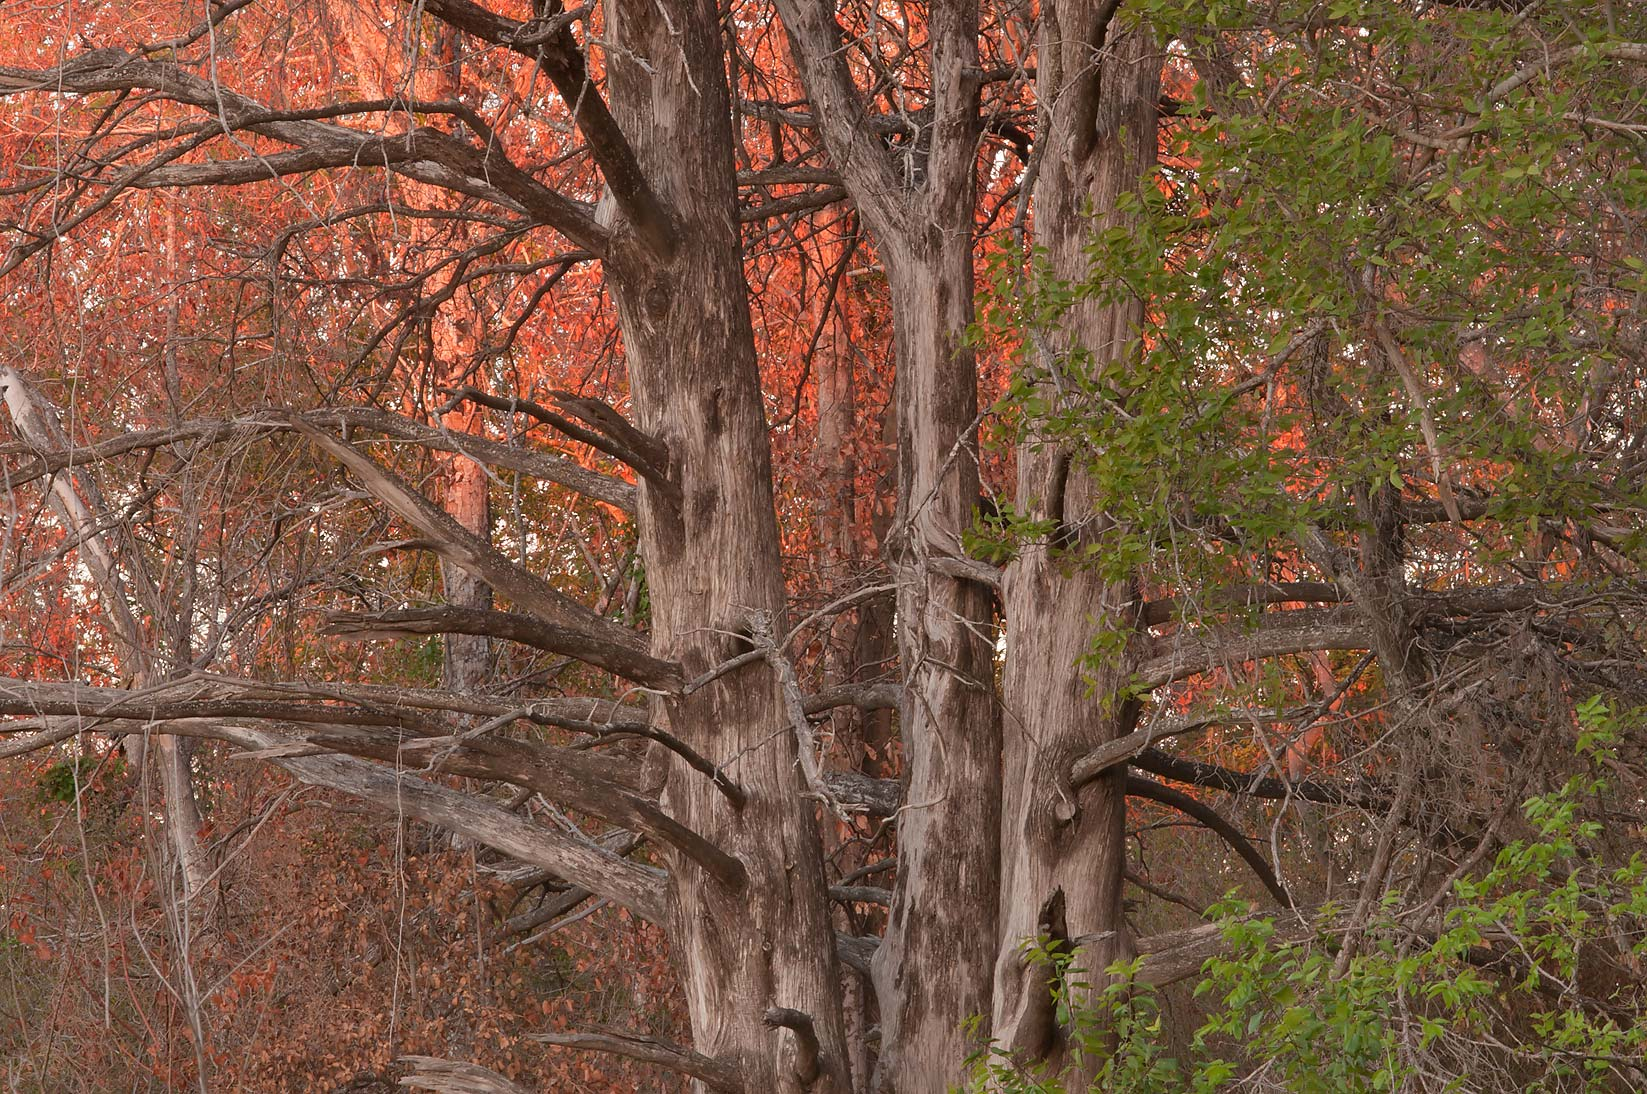 Dry cedar trees in Bee Creek Park in College Station, Texas